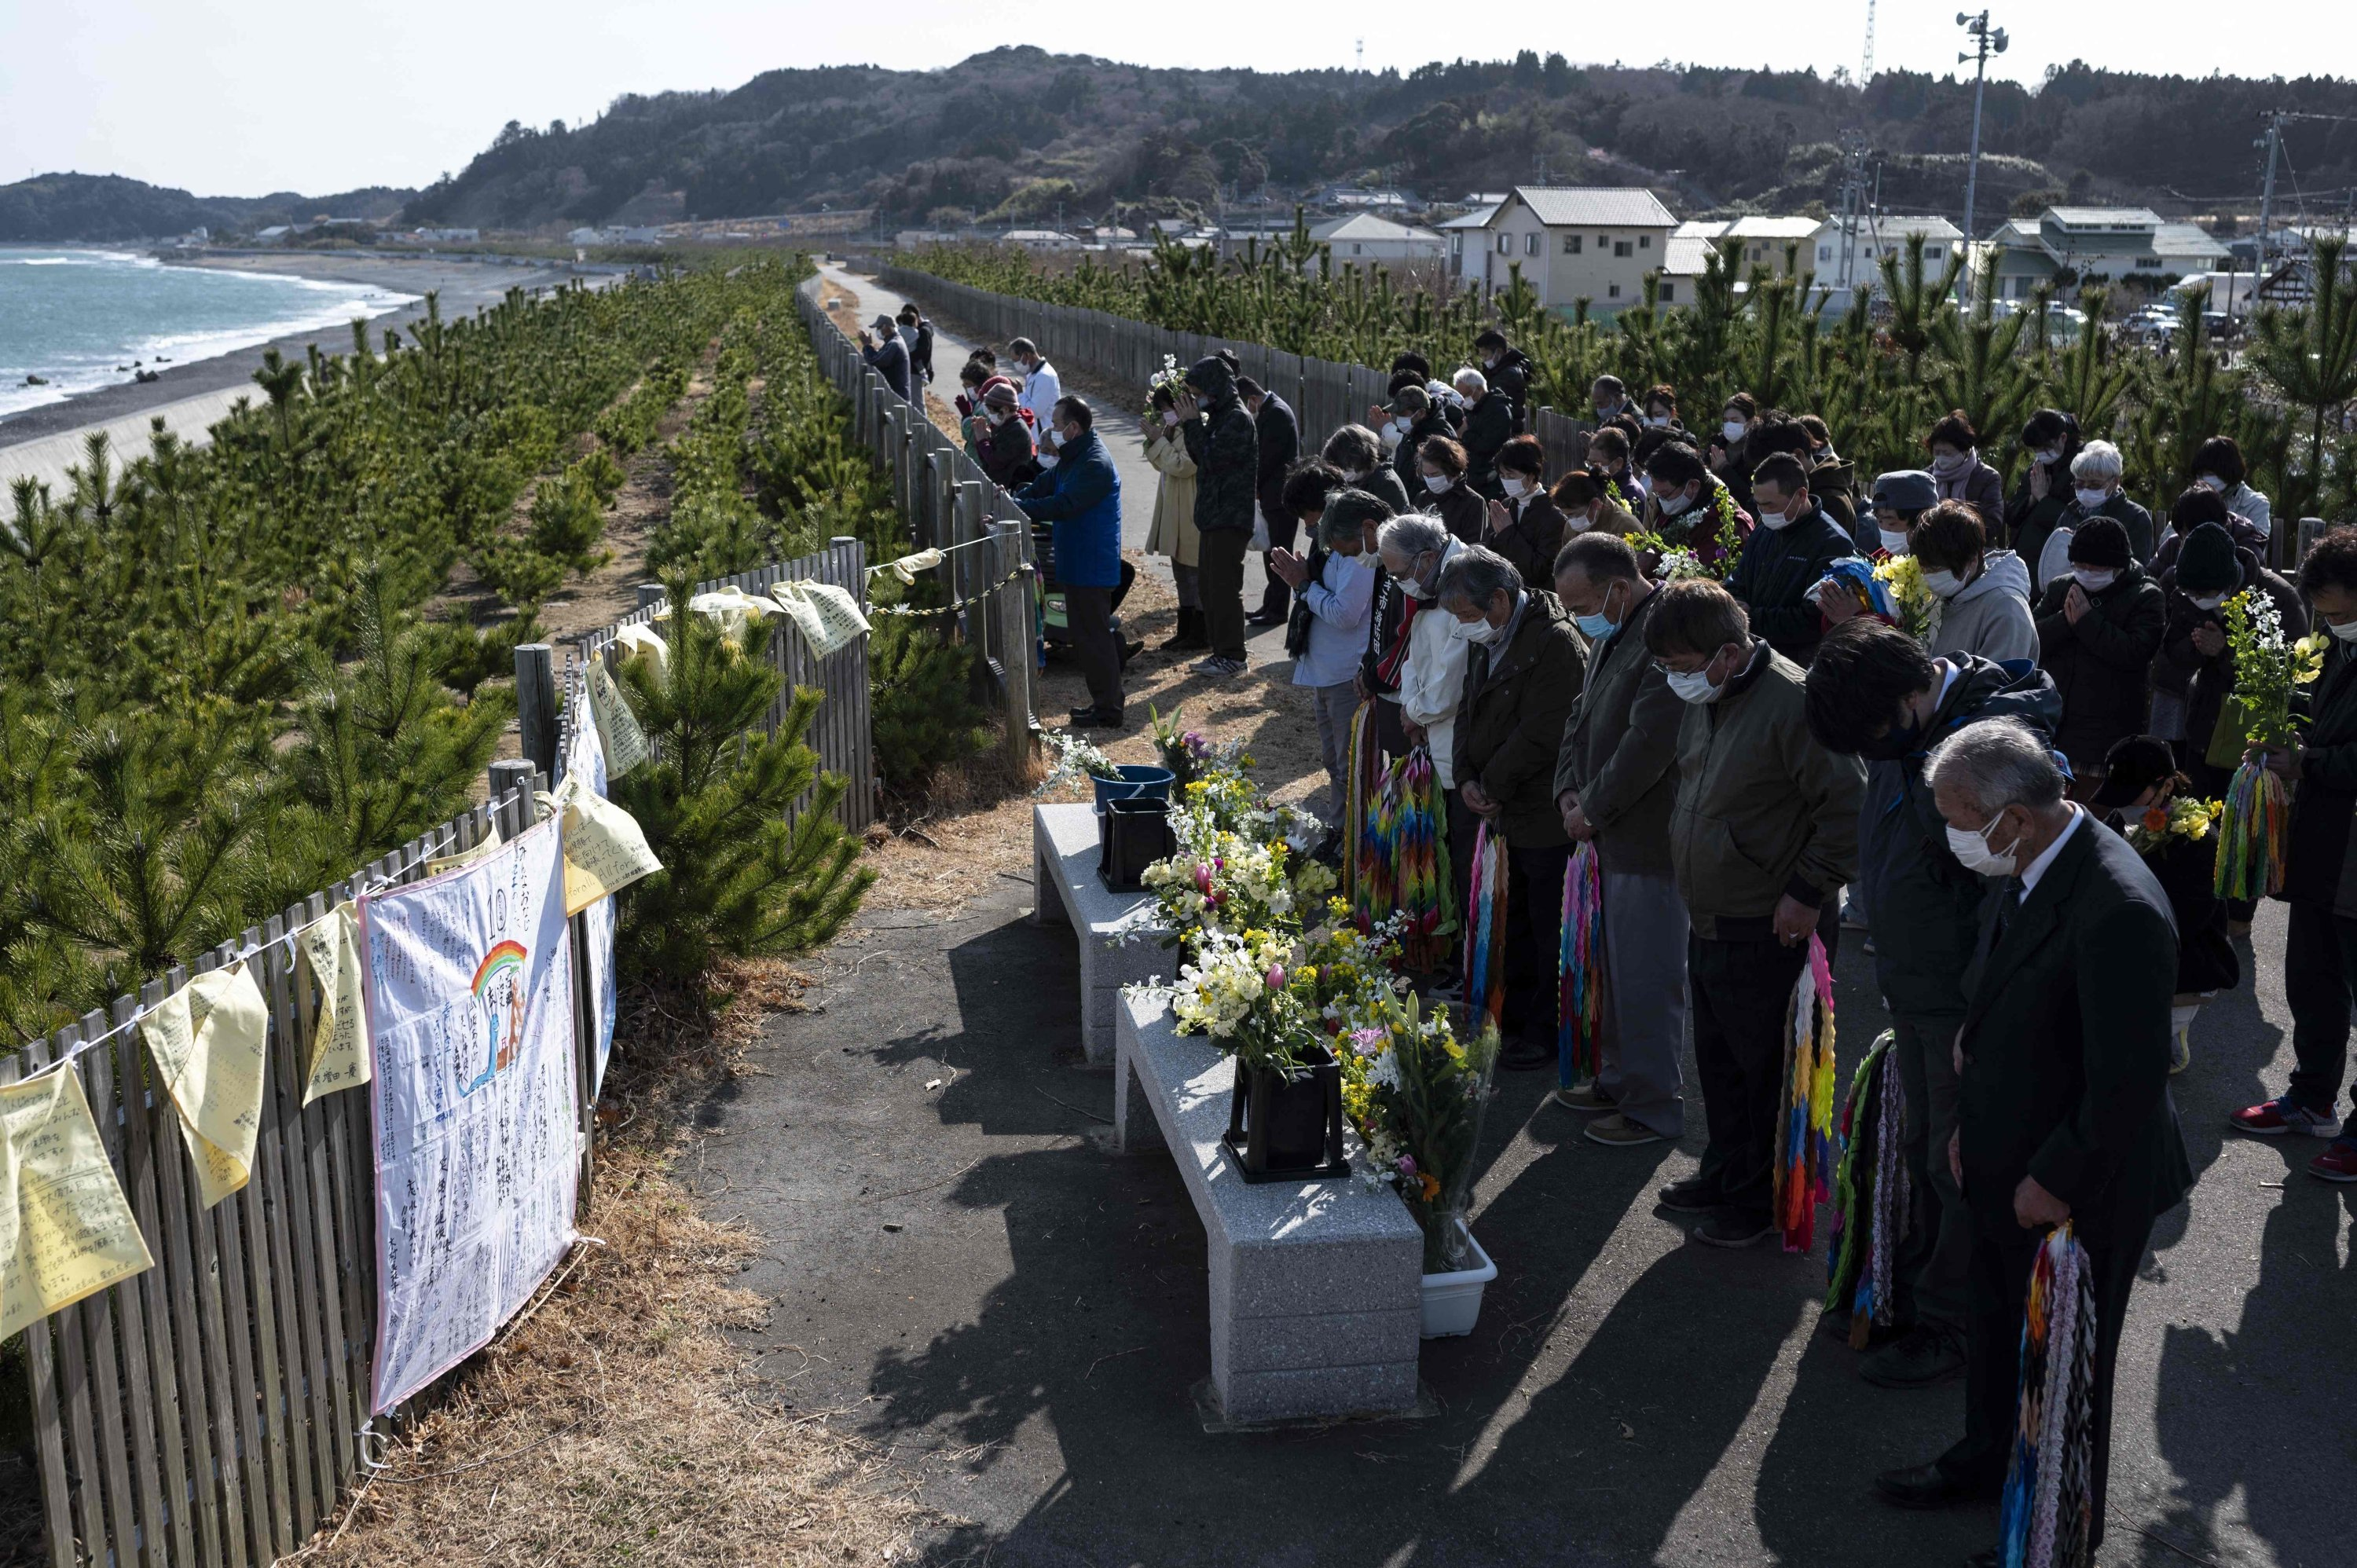 People observe a minute's silence in front of the sea in Hisanohama, marking the 10th anniversary of the 9 magnitude earthquake, Fukushima prefecture, Japan, March 11, 2021. (AFP)